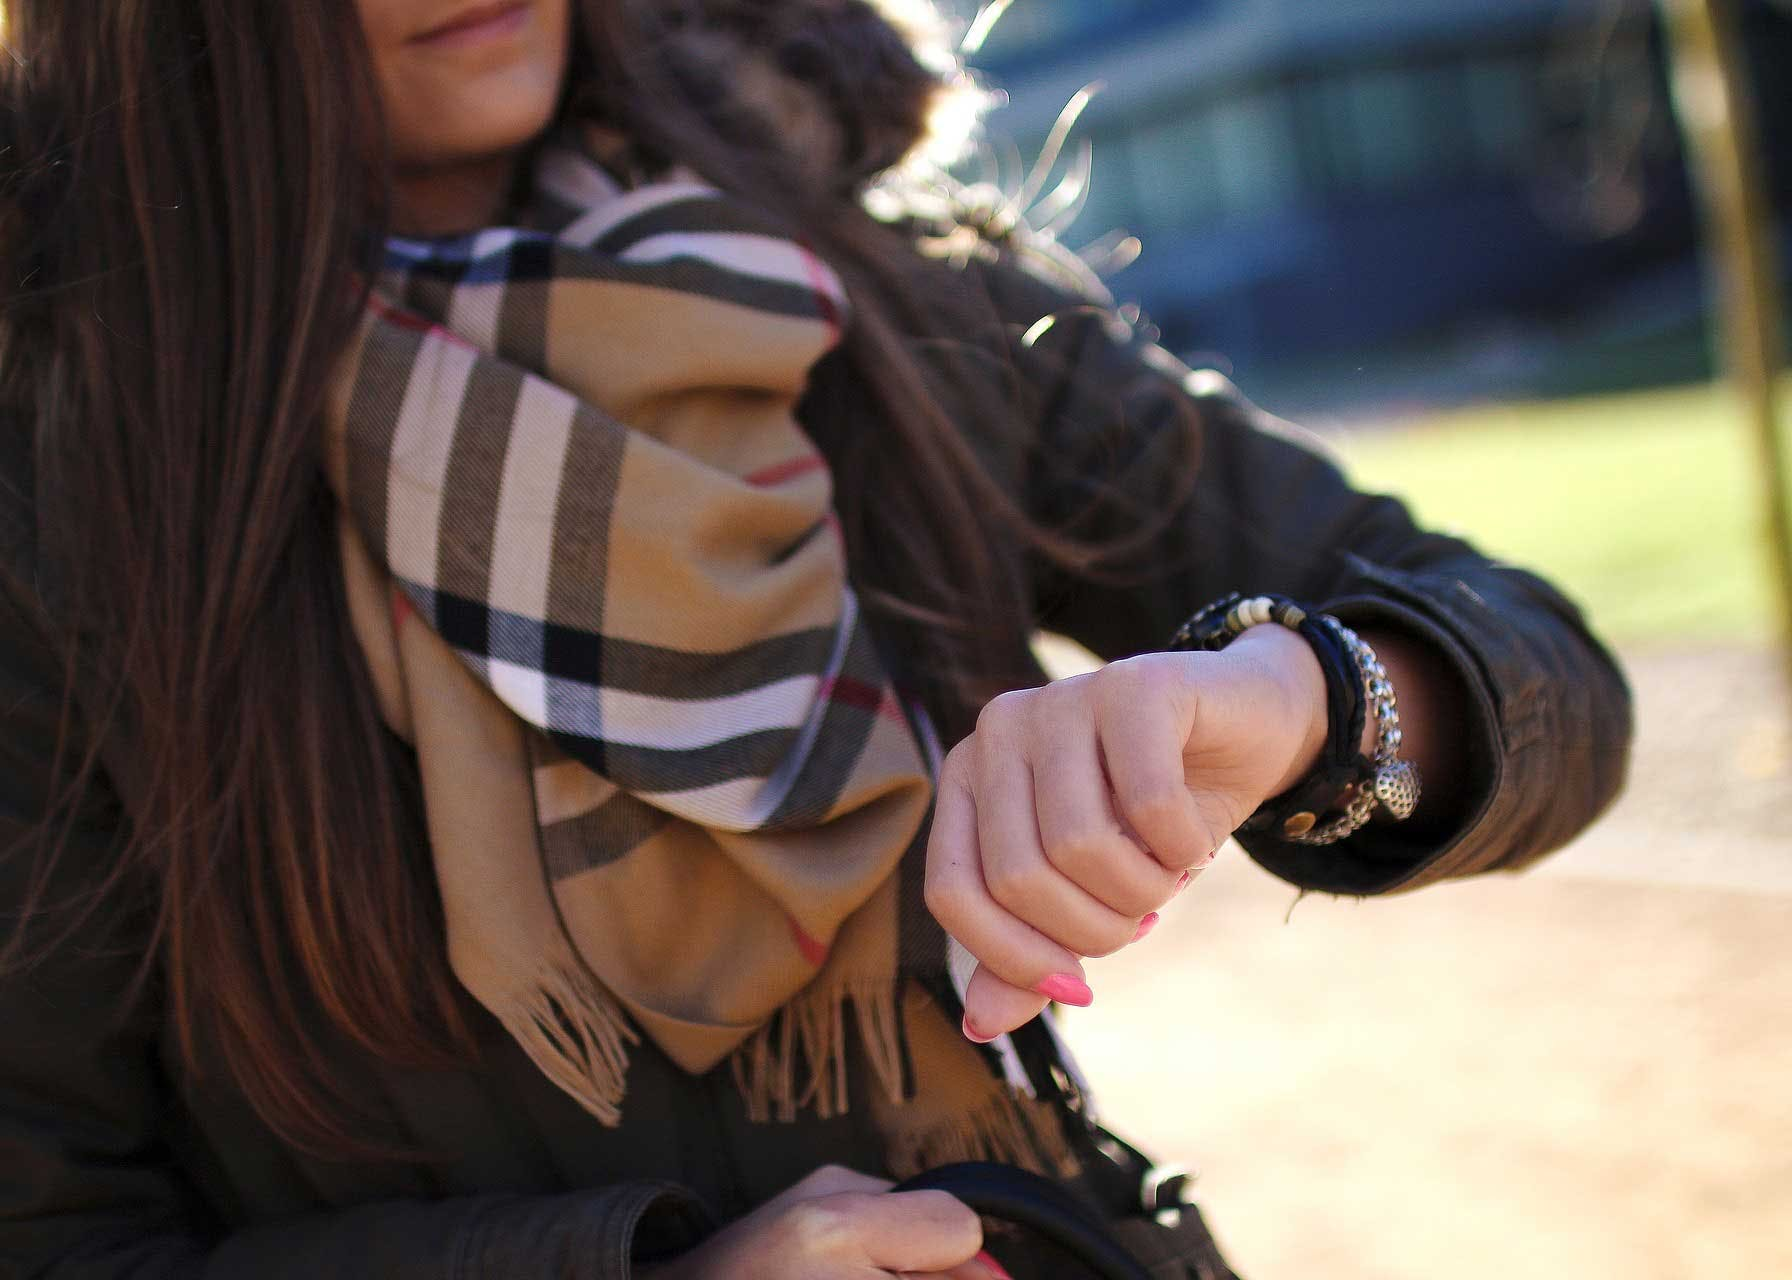 Woman wearing a Burberry scarf and checking her watch